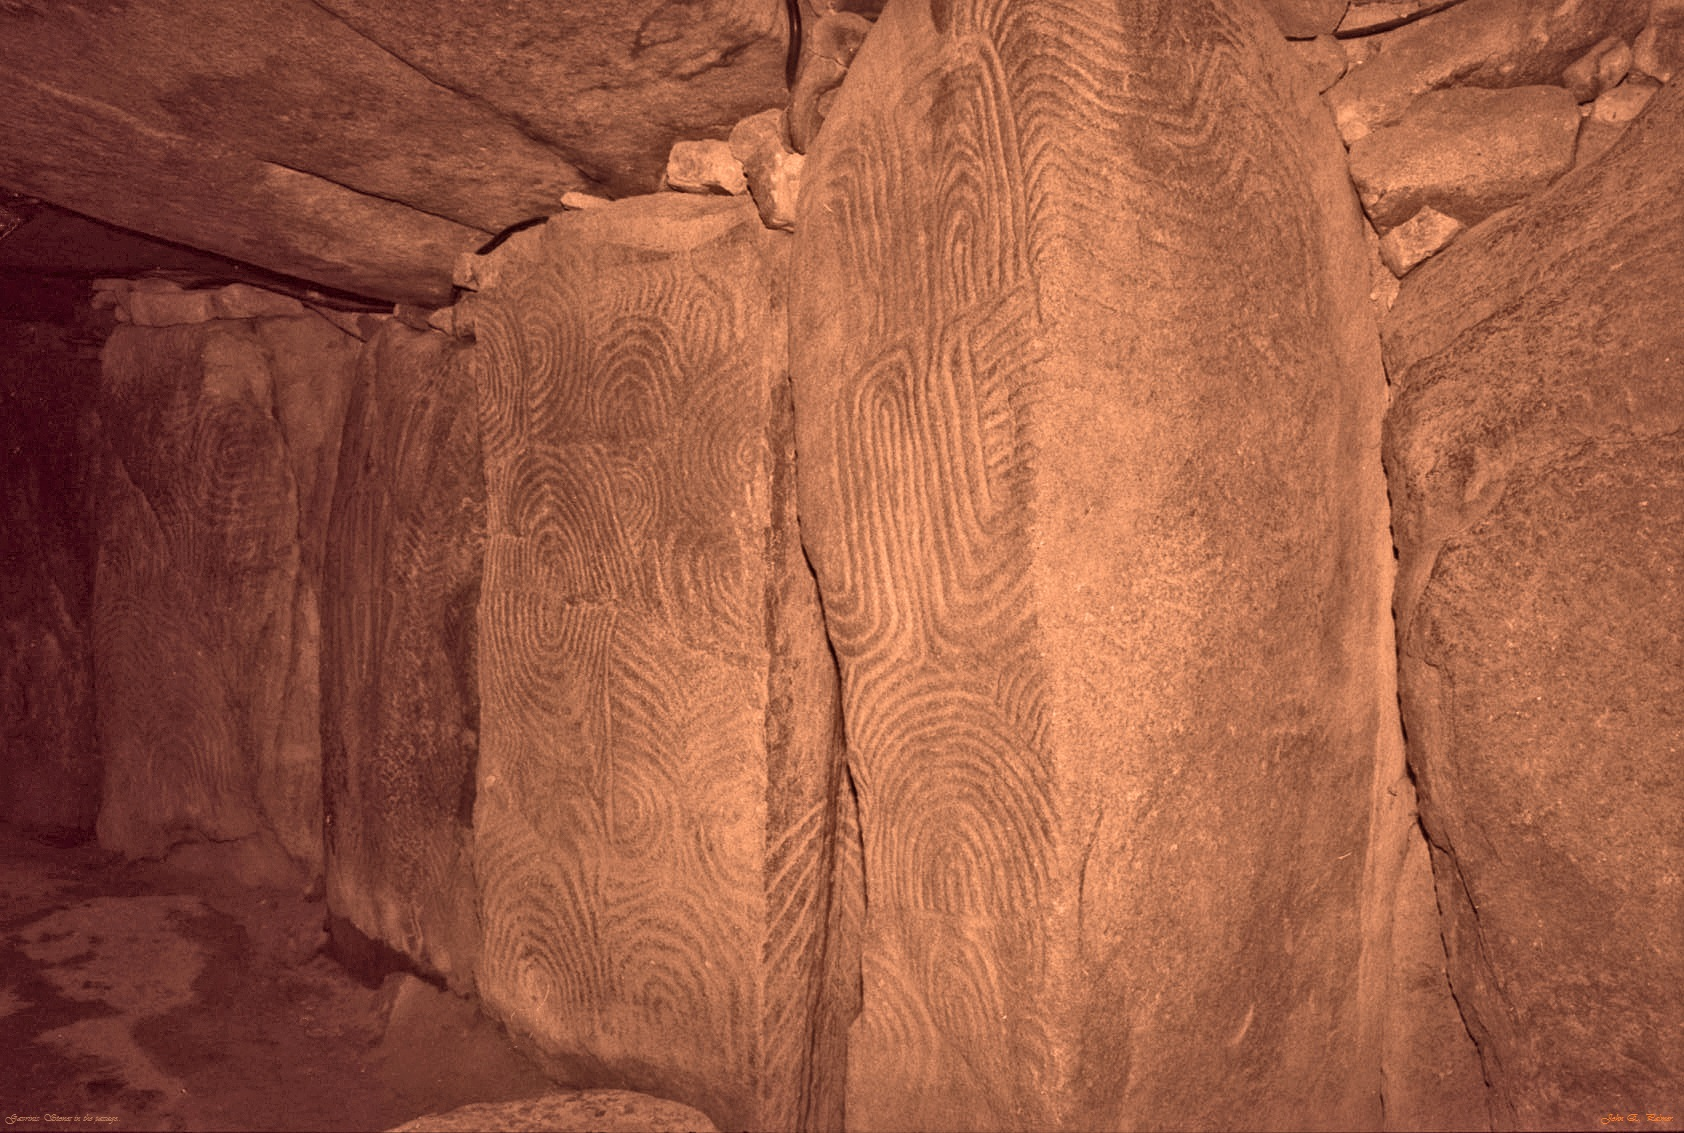 Decorated artwork on stones in the passage leading to the chamber.        Photo copyright: John Palmer